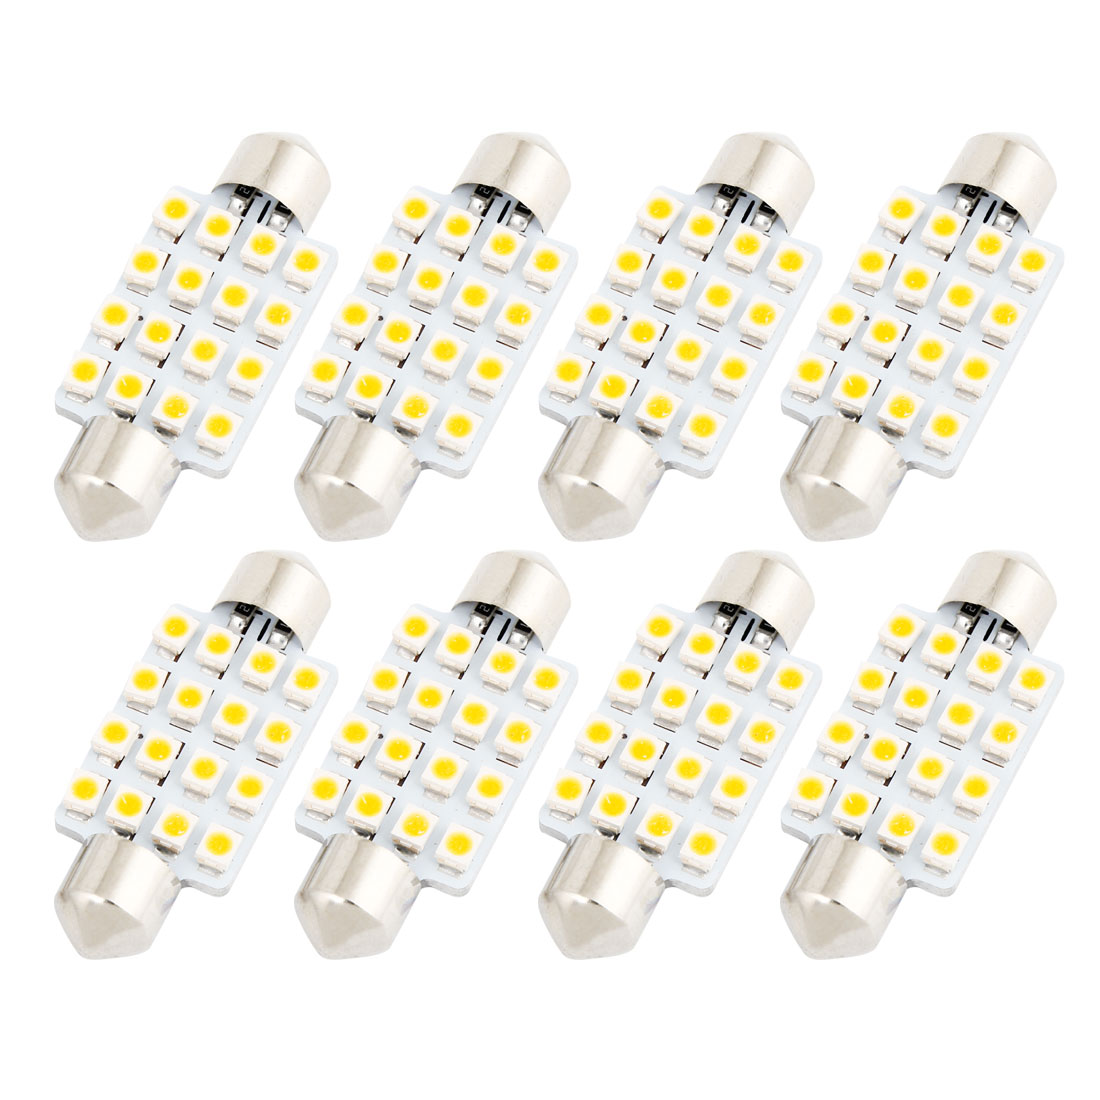 8PCS 42mm 16-SMD 1210 LED Warm White Festoon Dome Map Light 211-2 212-2 Internal